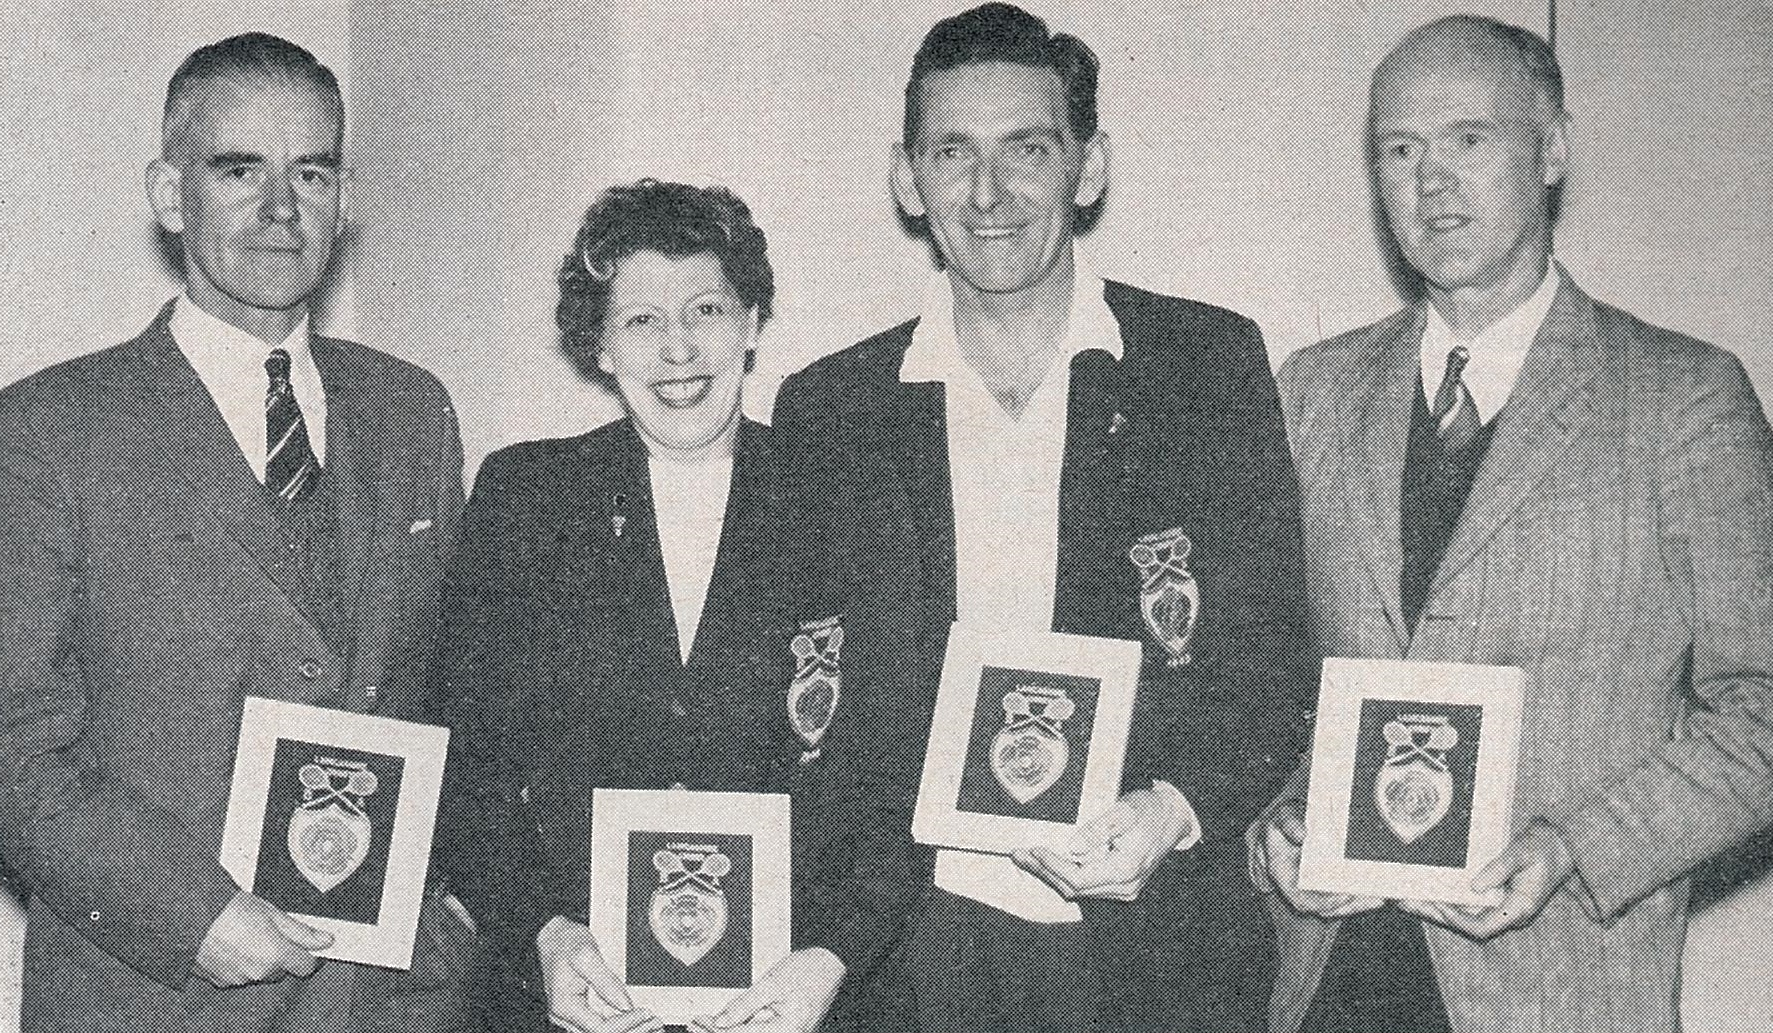 Harold morland awarded for representing lancashire over 50 times - badminton gazette nov 1960